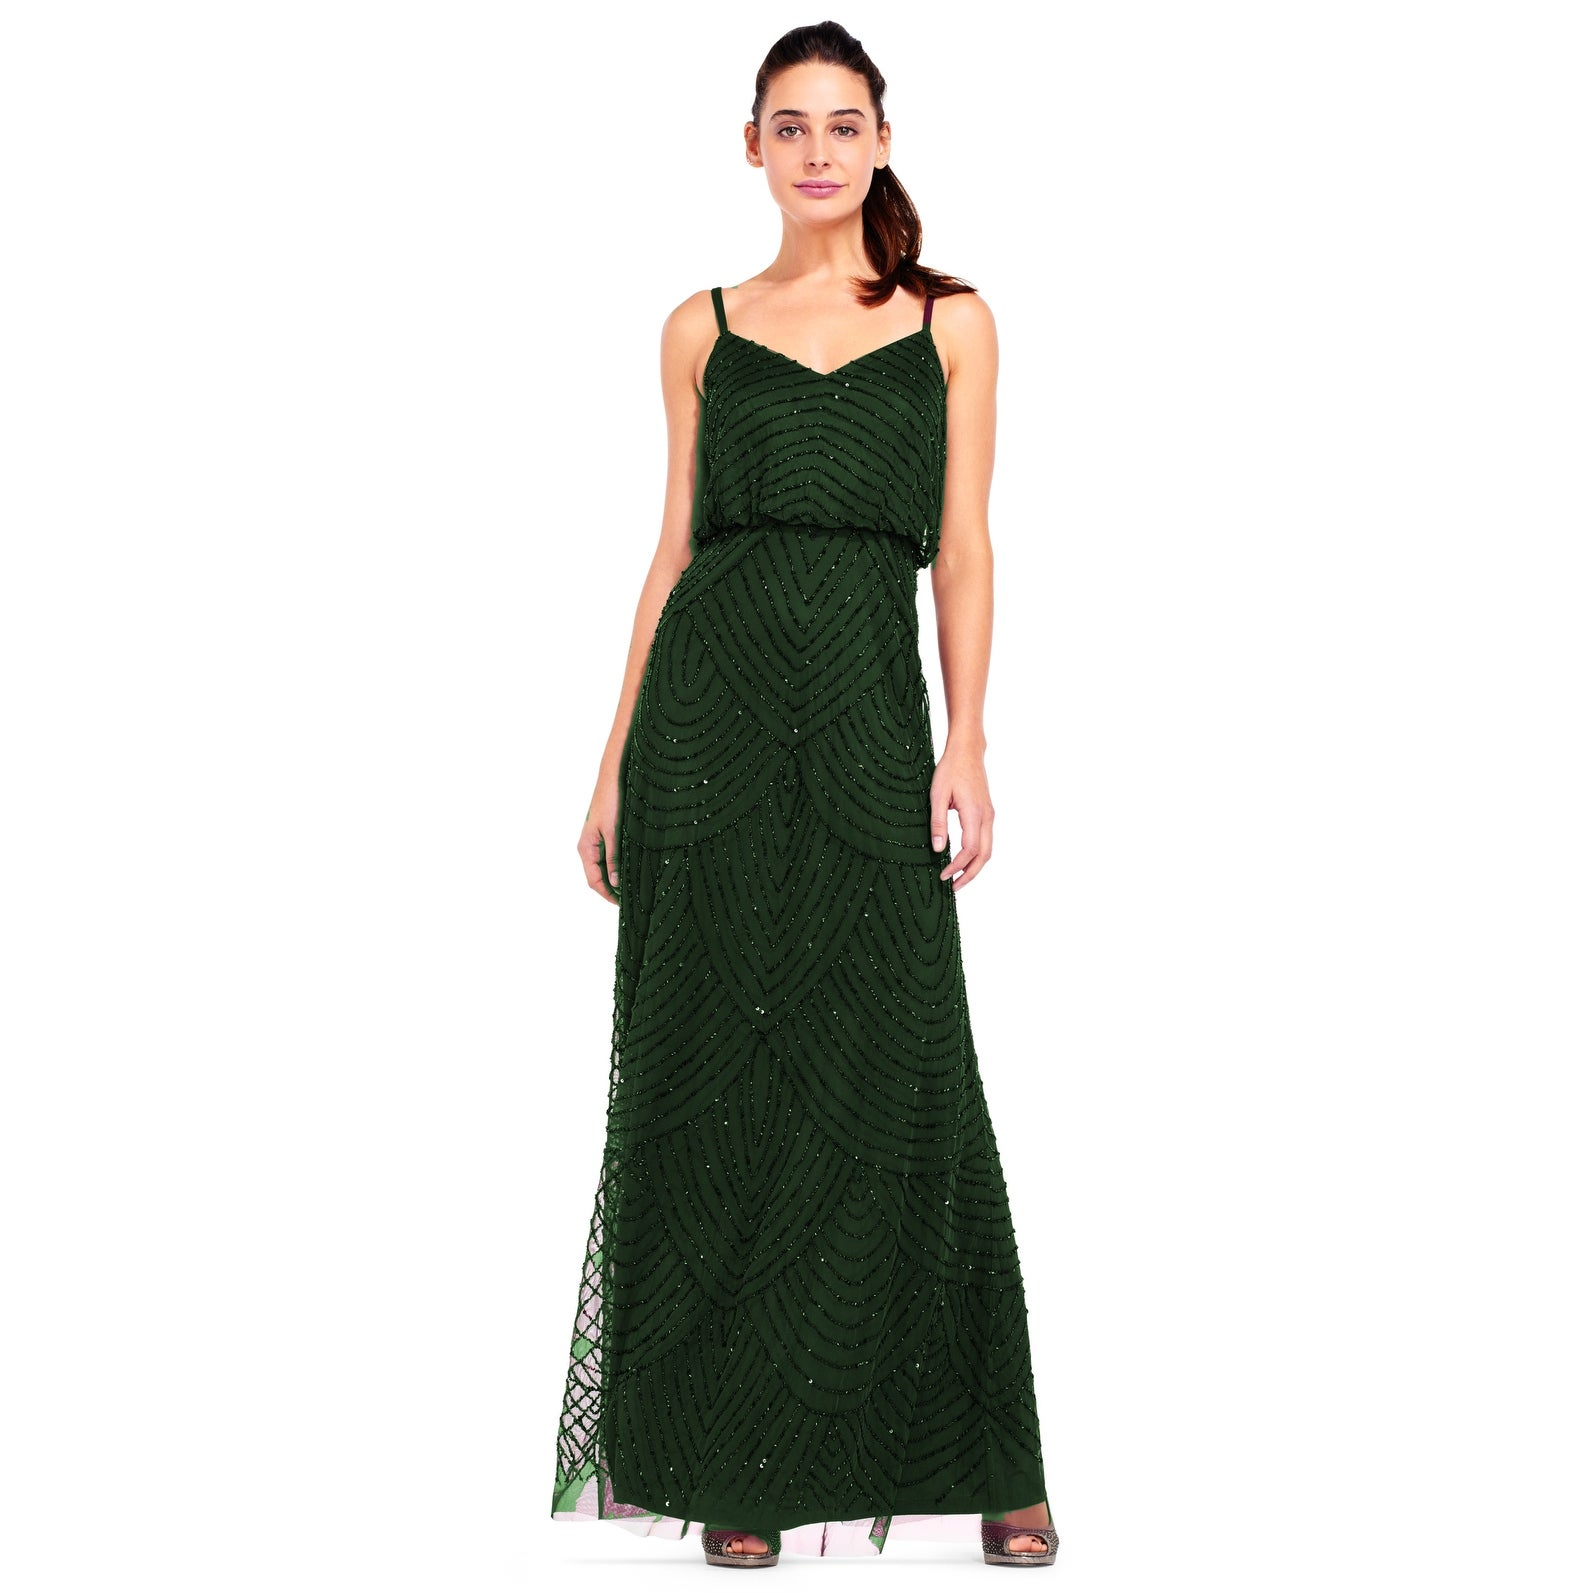 b6da75da204 Shop Adrianna Papell Women s Long Beaded Blouson Gown - Free Shipping Today  - Overstock - 20263509